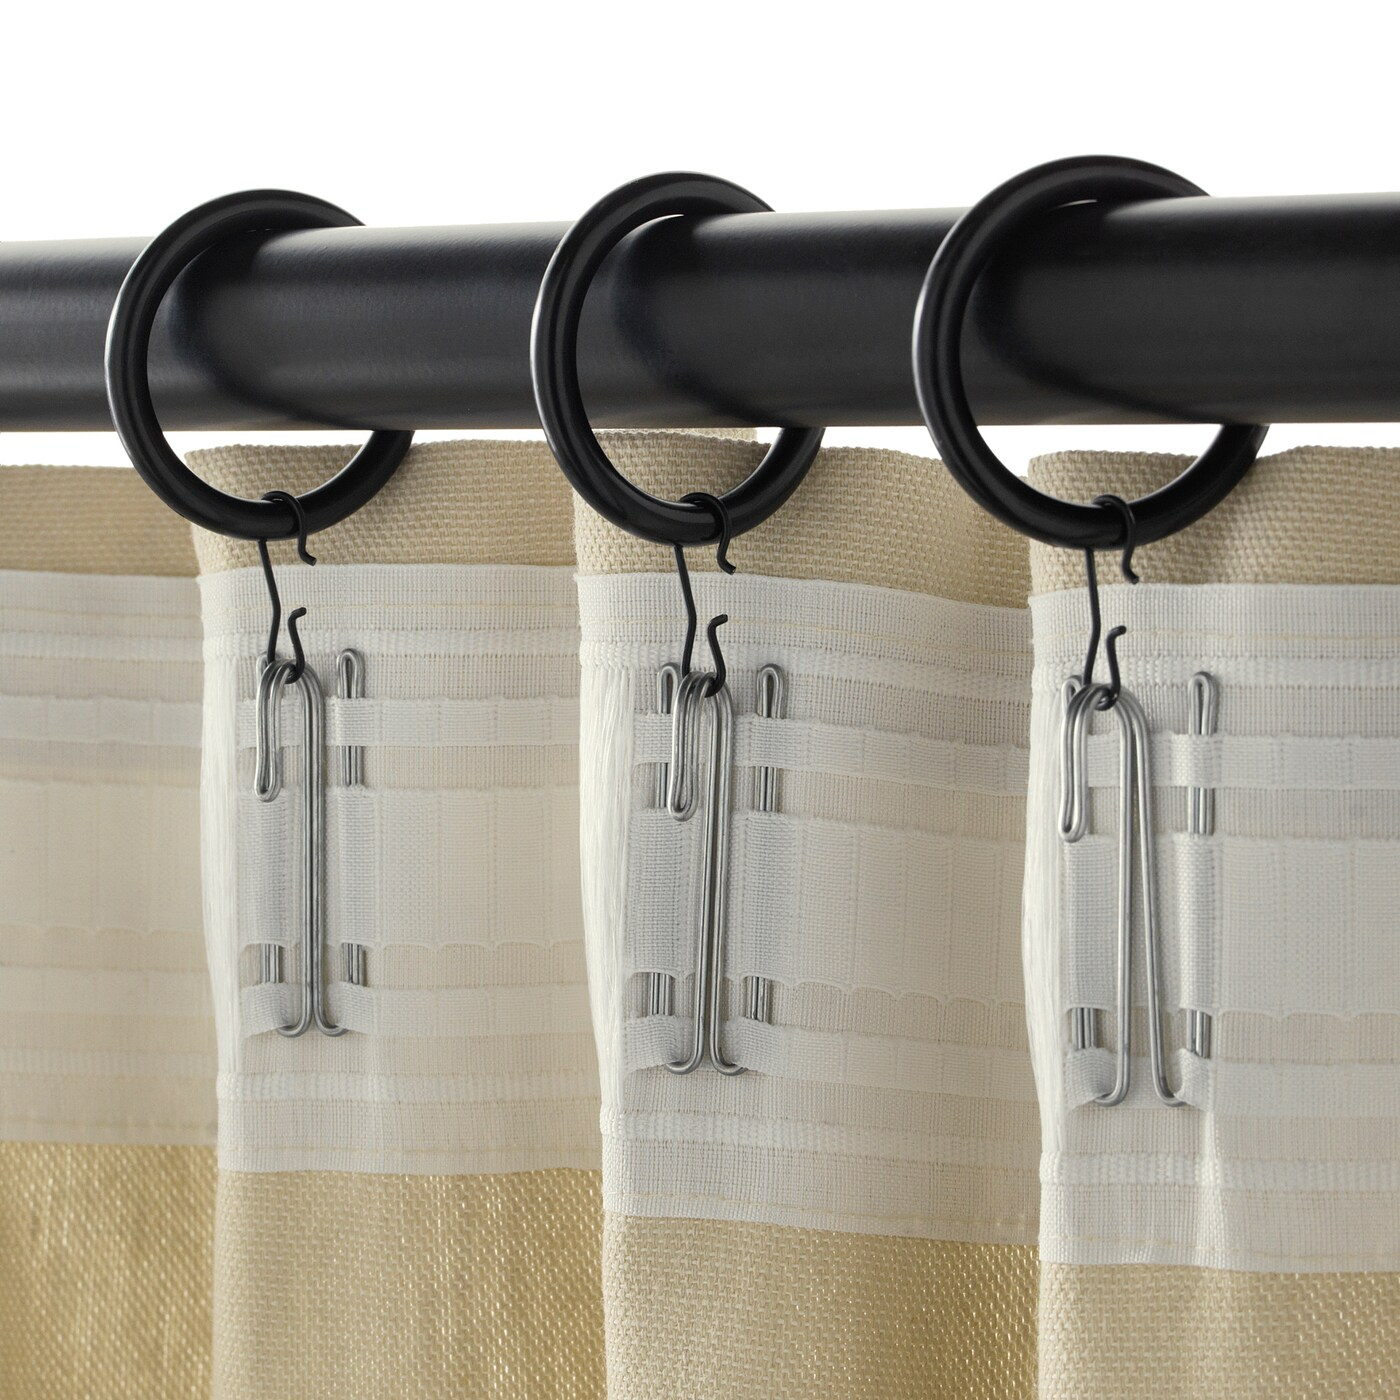 syrlig curtain ring with clip and hook black 1 1 2 38 mm